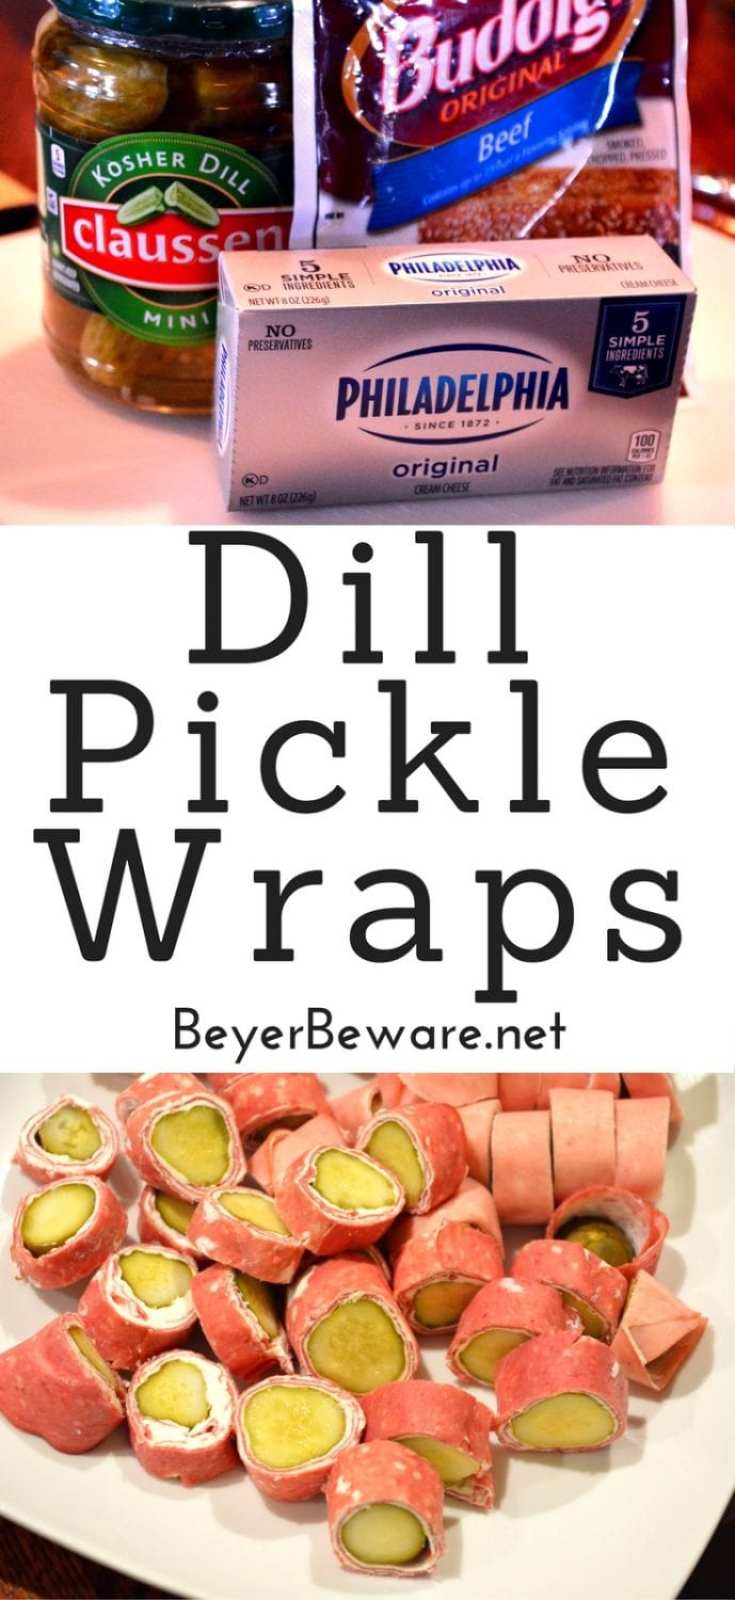 Three simple ingredients to make these dill pickle wraps for an easy low-carb and gluten free snack. #Keto #LowCarb #KetoSnacks